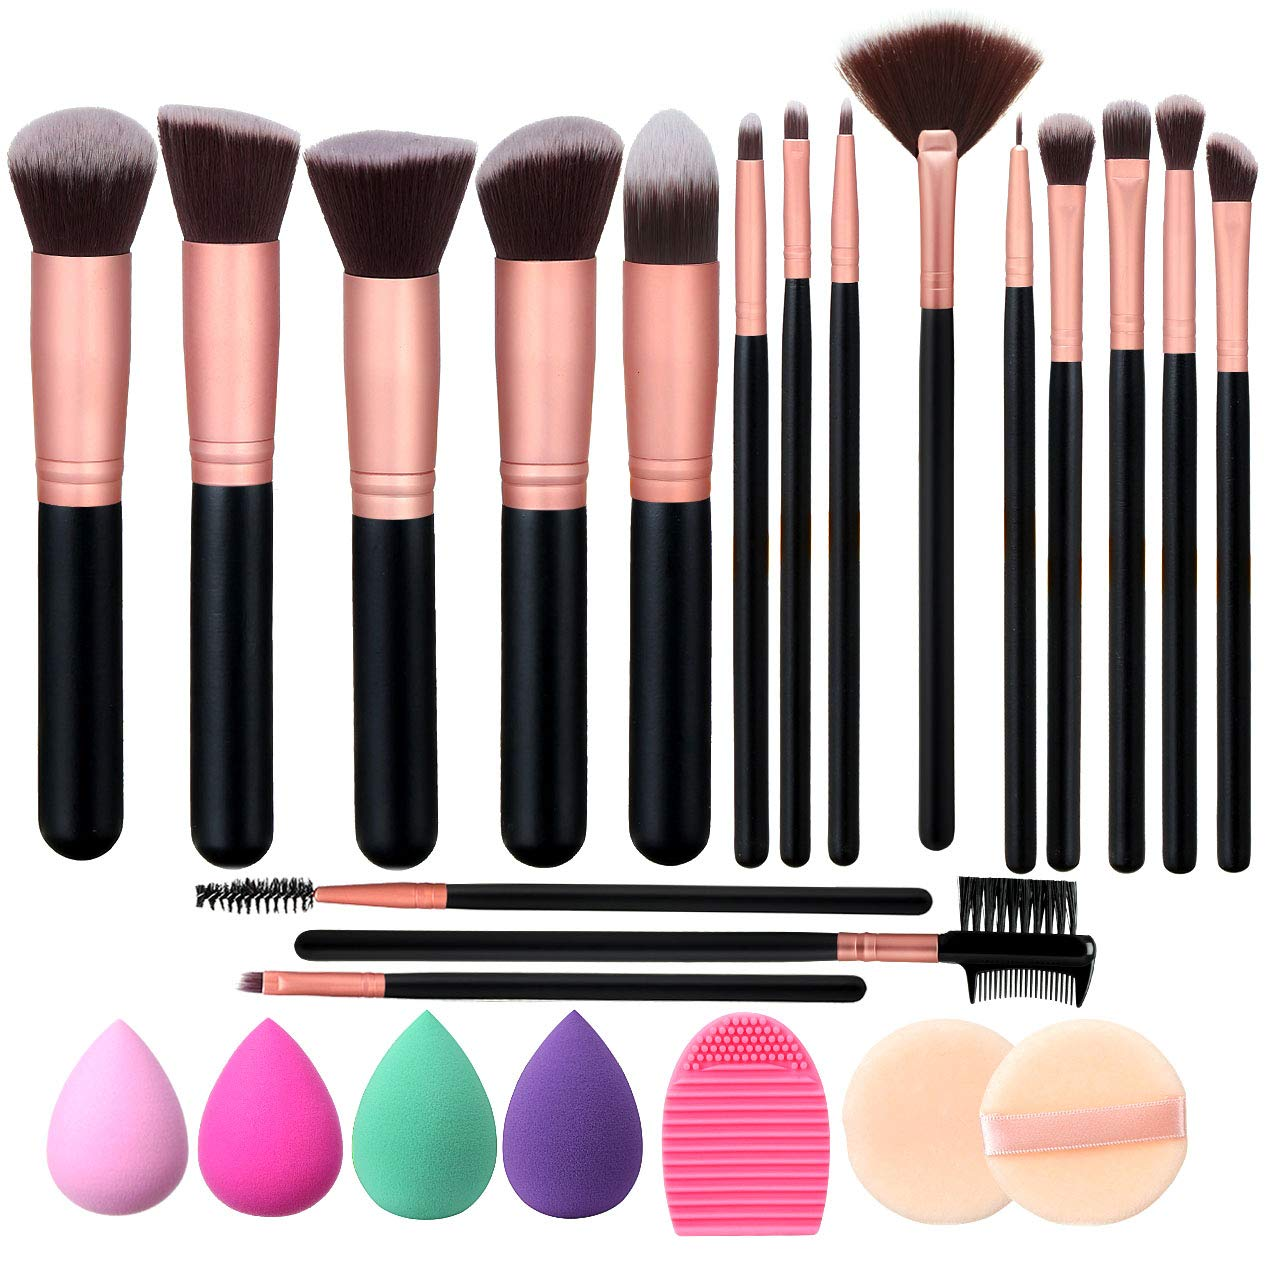 Elisel Makeup Brush Set, 17 Pcs Makeup Brushes with 4 Makeup Sponge Blender 2 Makeup Powder Puff 1 silicone brush cleaner Make Up Brushes Kit (Rose Gold 17)